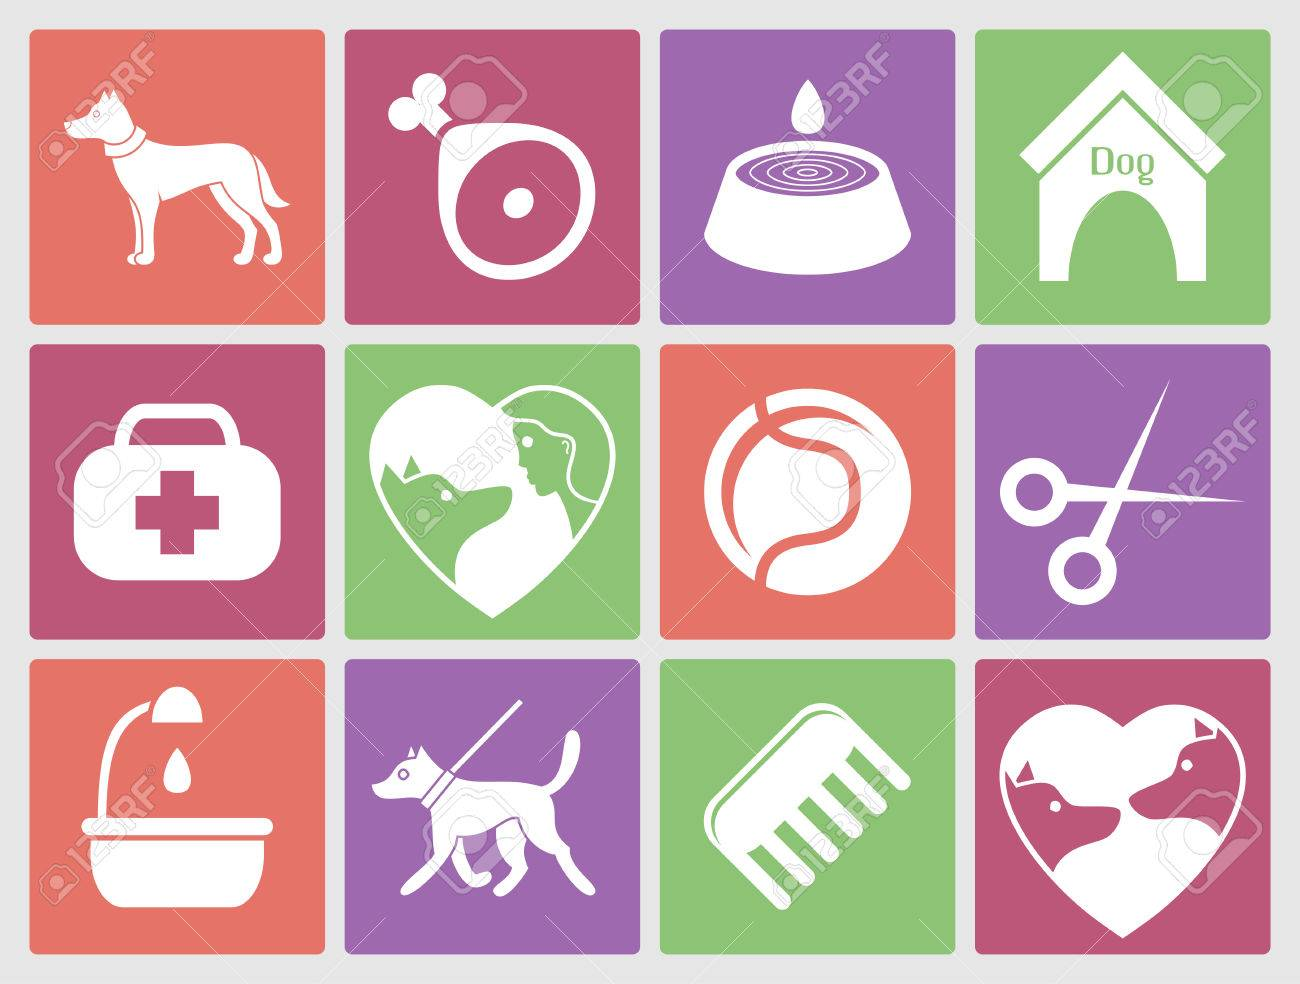 Dog icons set for web. What dogs need - 33429025